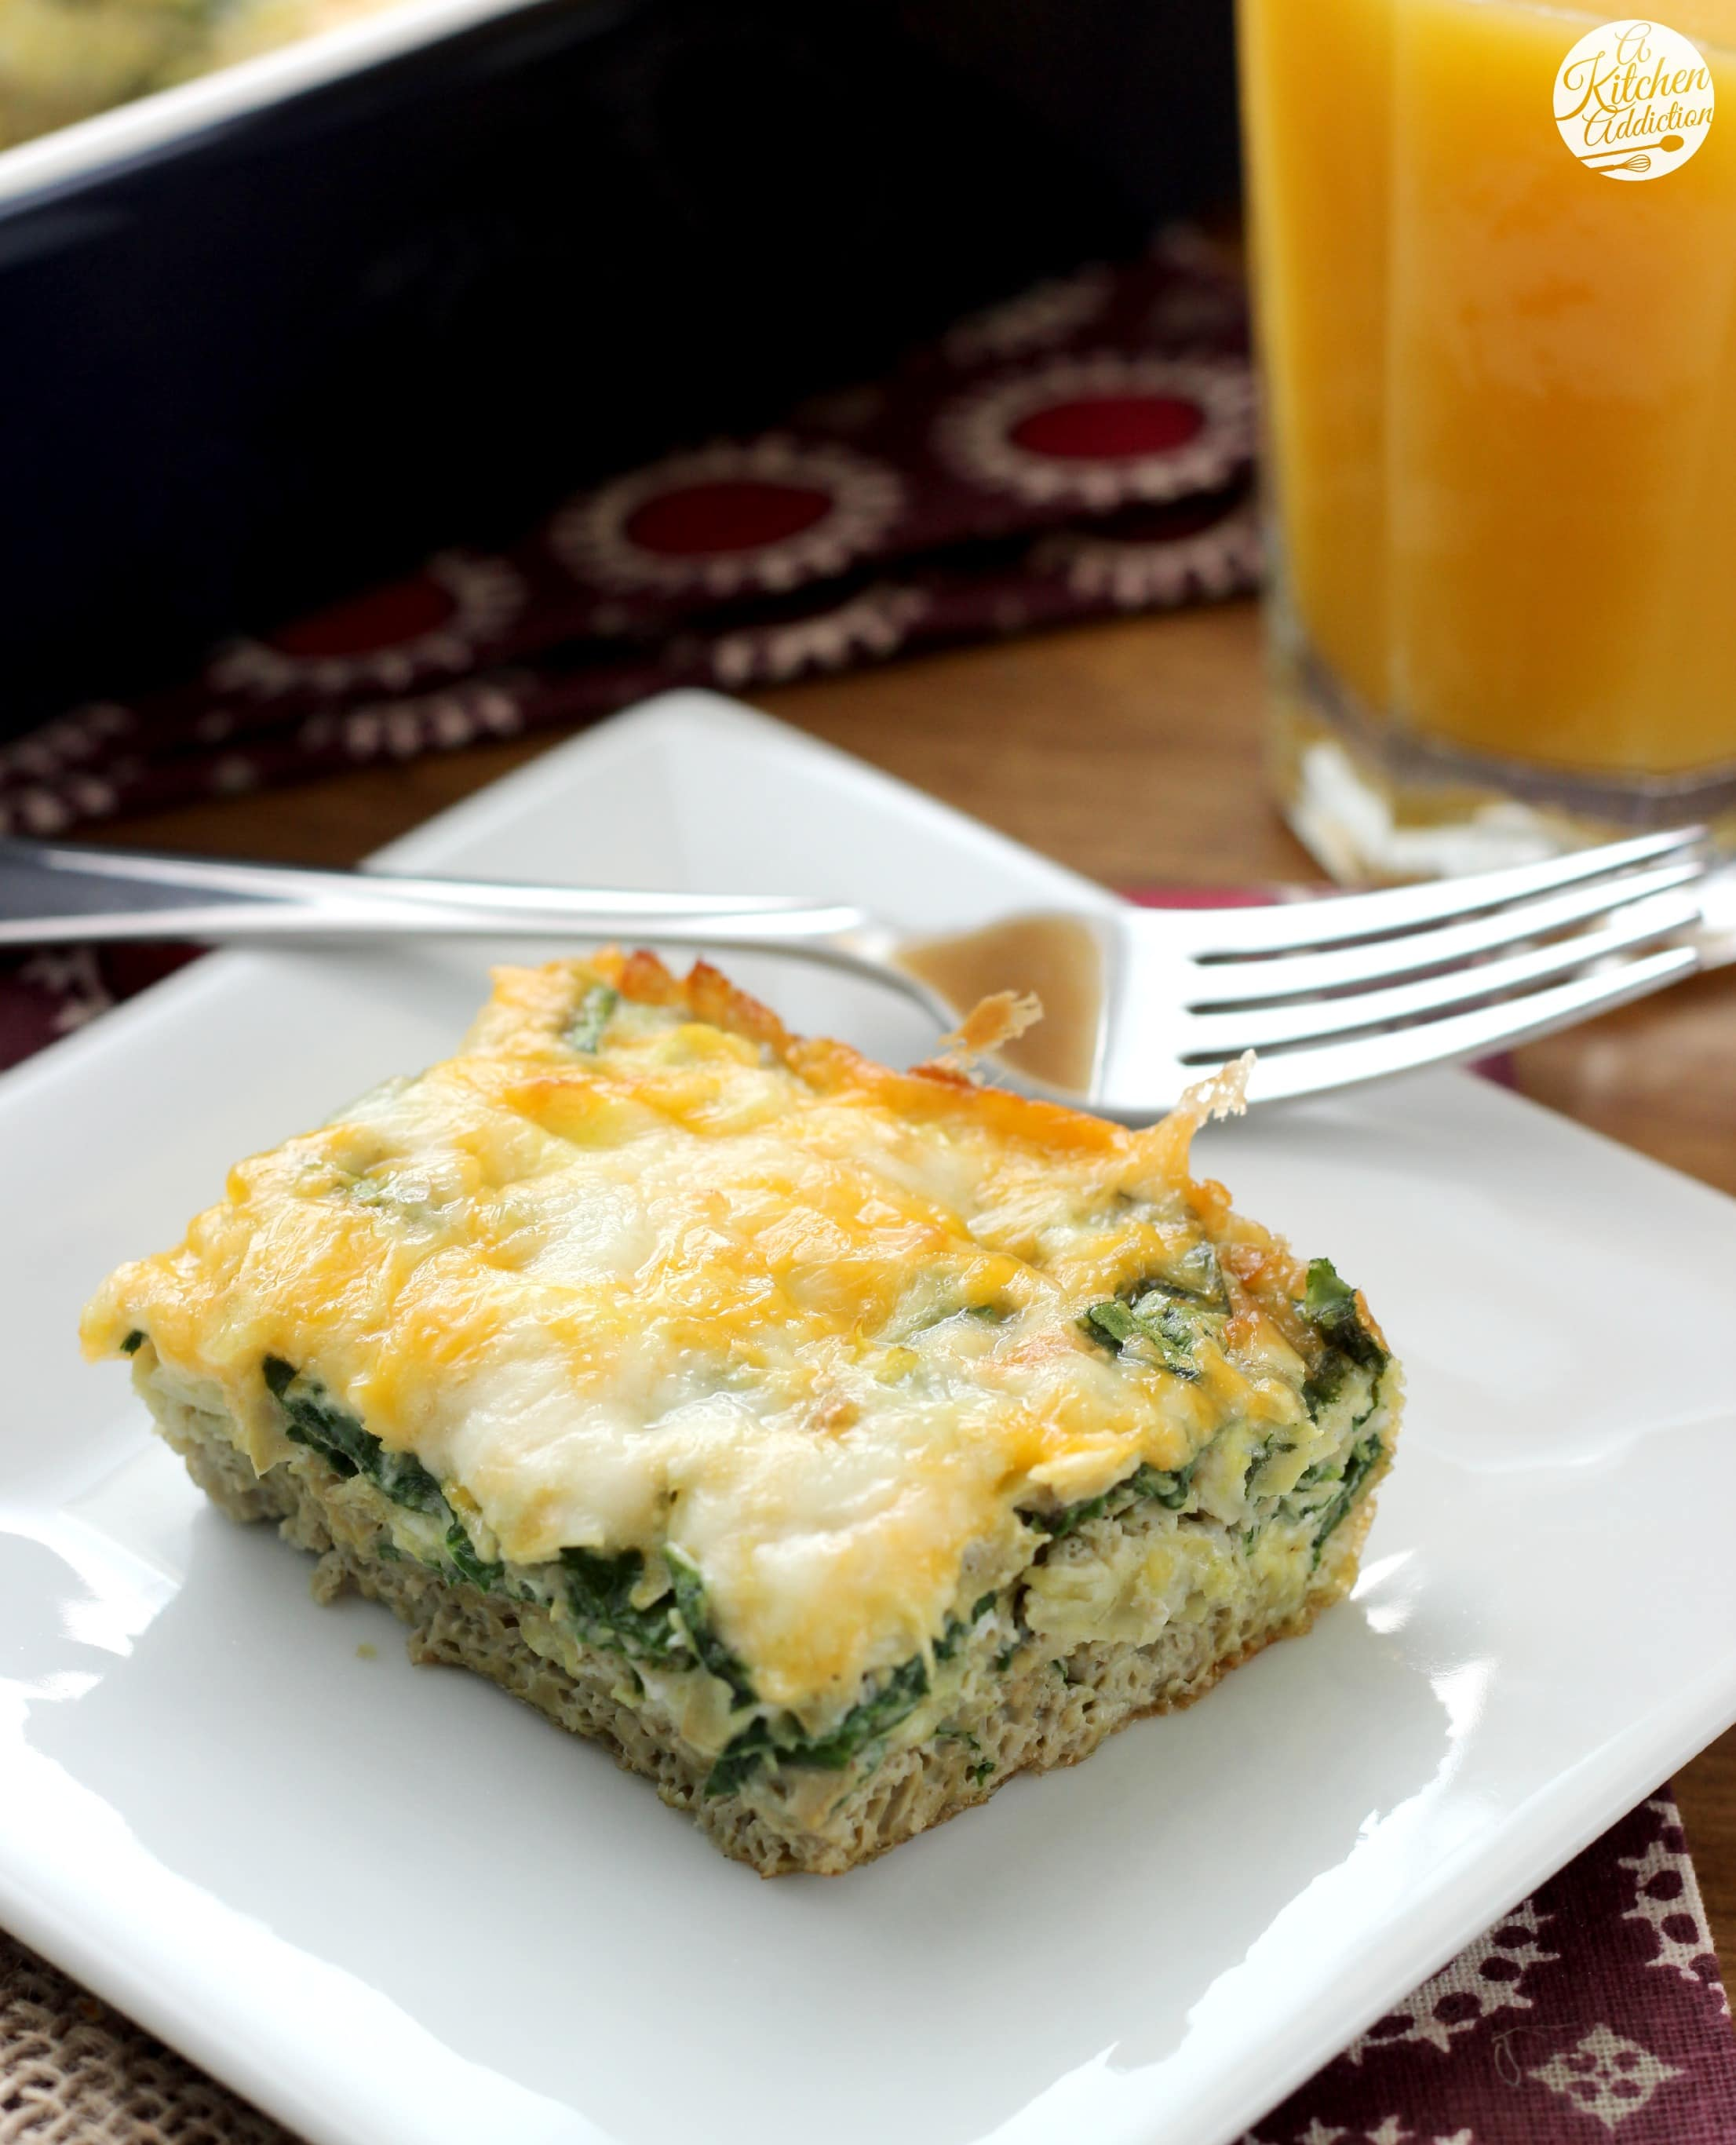 Spinach And Mozzarella Egg Bake Recipes — Dishmaps